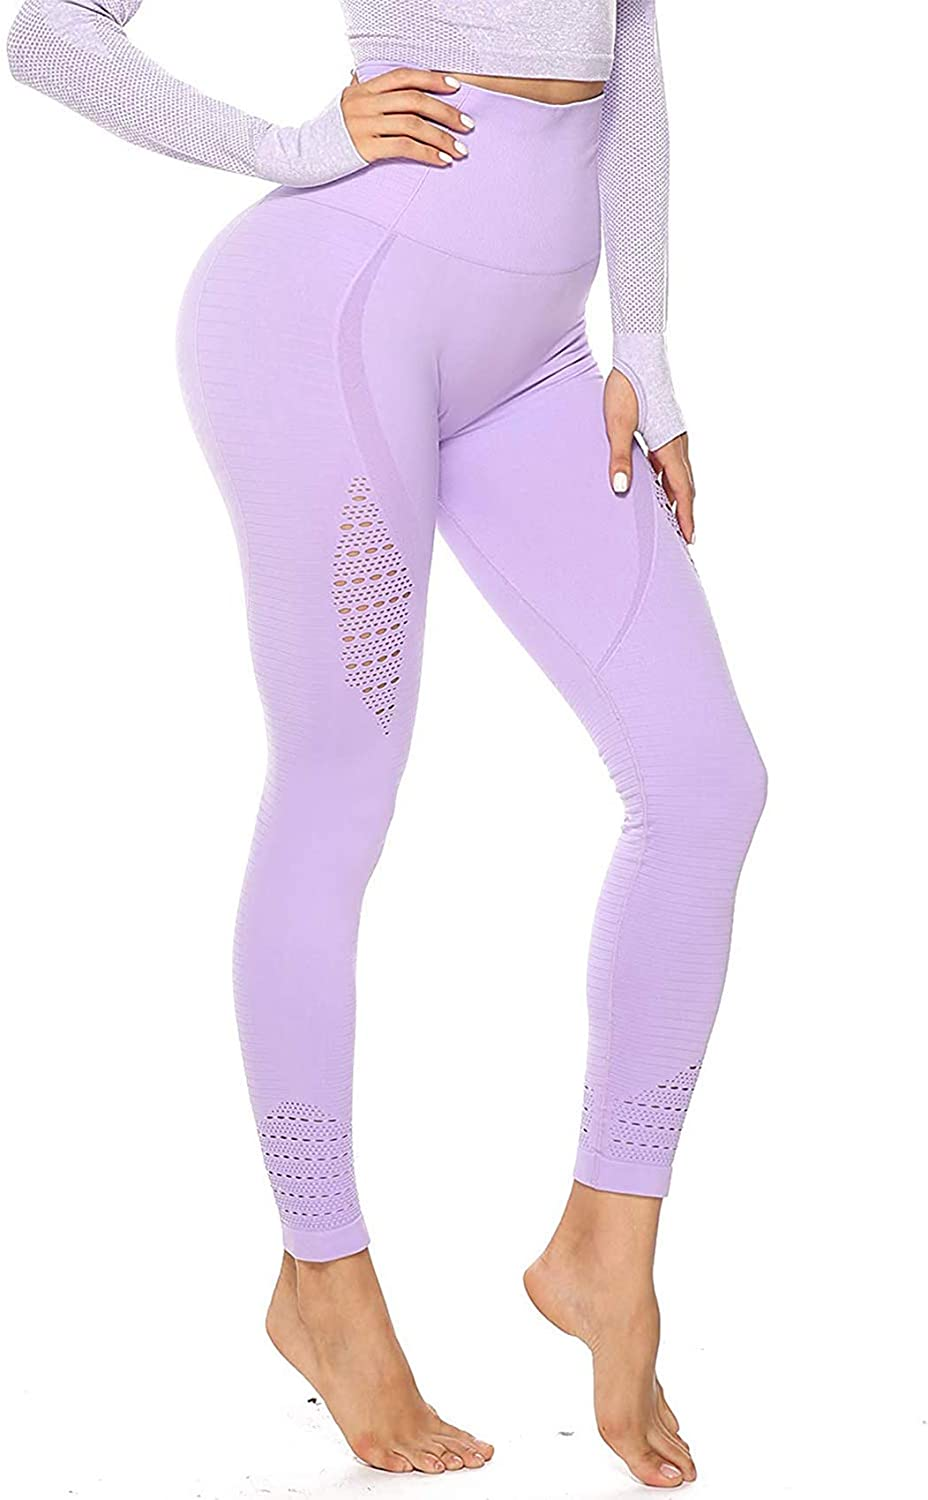 SEASUM Womens High Waist Active Energy Leggings Slimming Seamless Compression Fit Pants Workout Tights Tummy Control